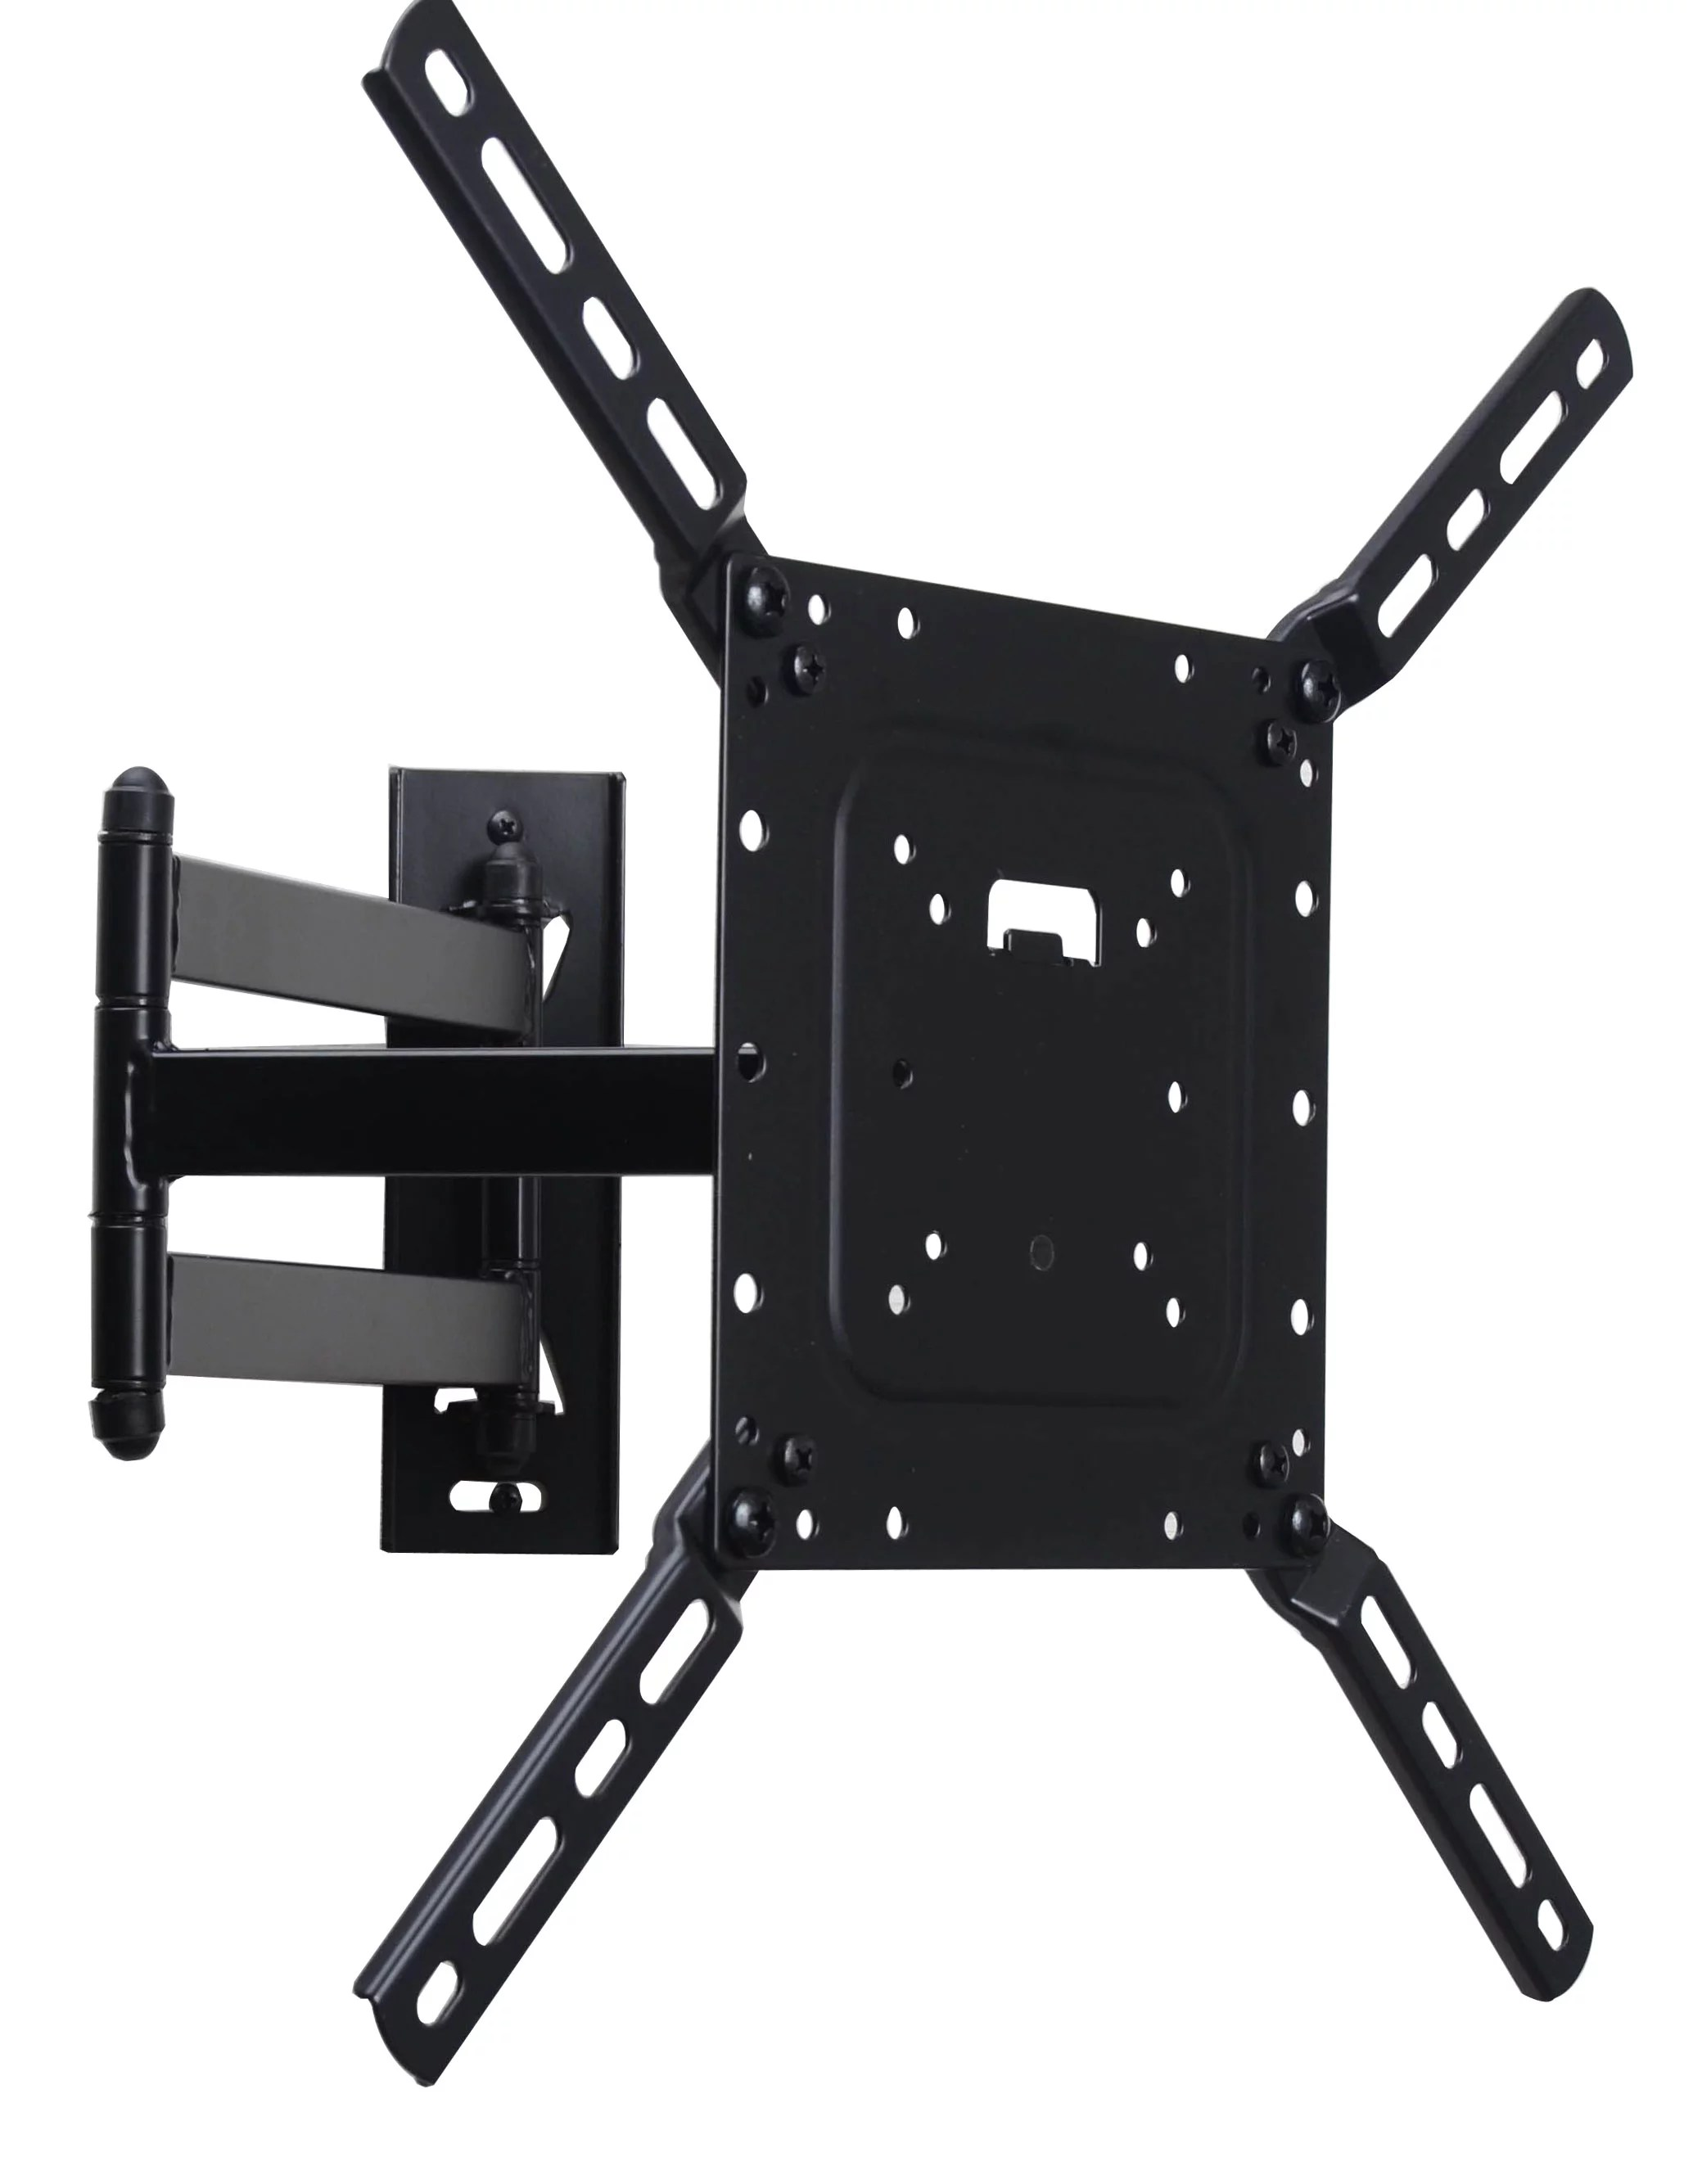 videosecu full motion tv wall mount for most 26 55 lcd led plasma flat panel screen display articulating bracket cb6 walmart com